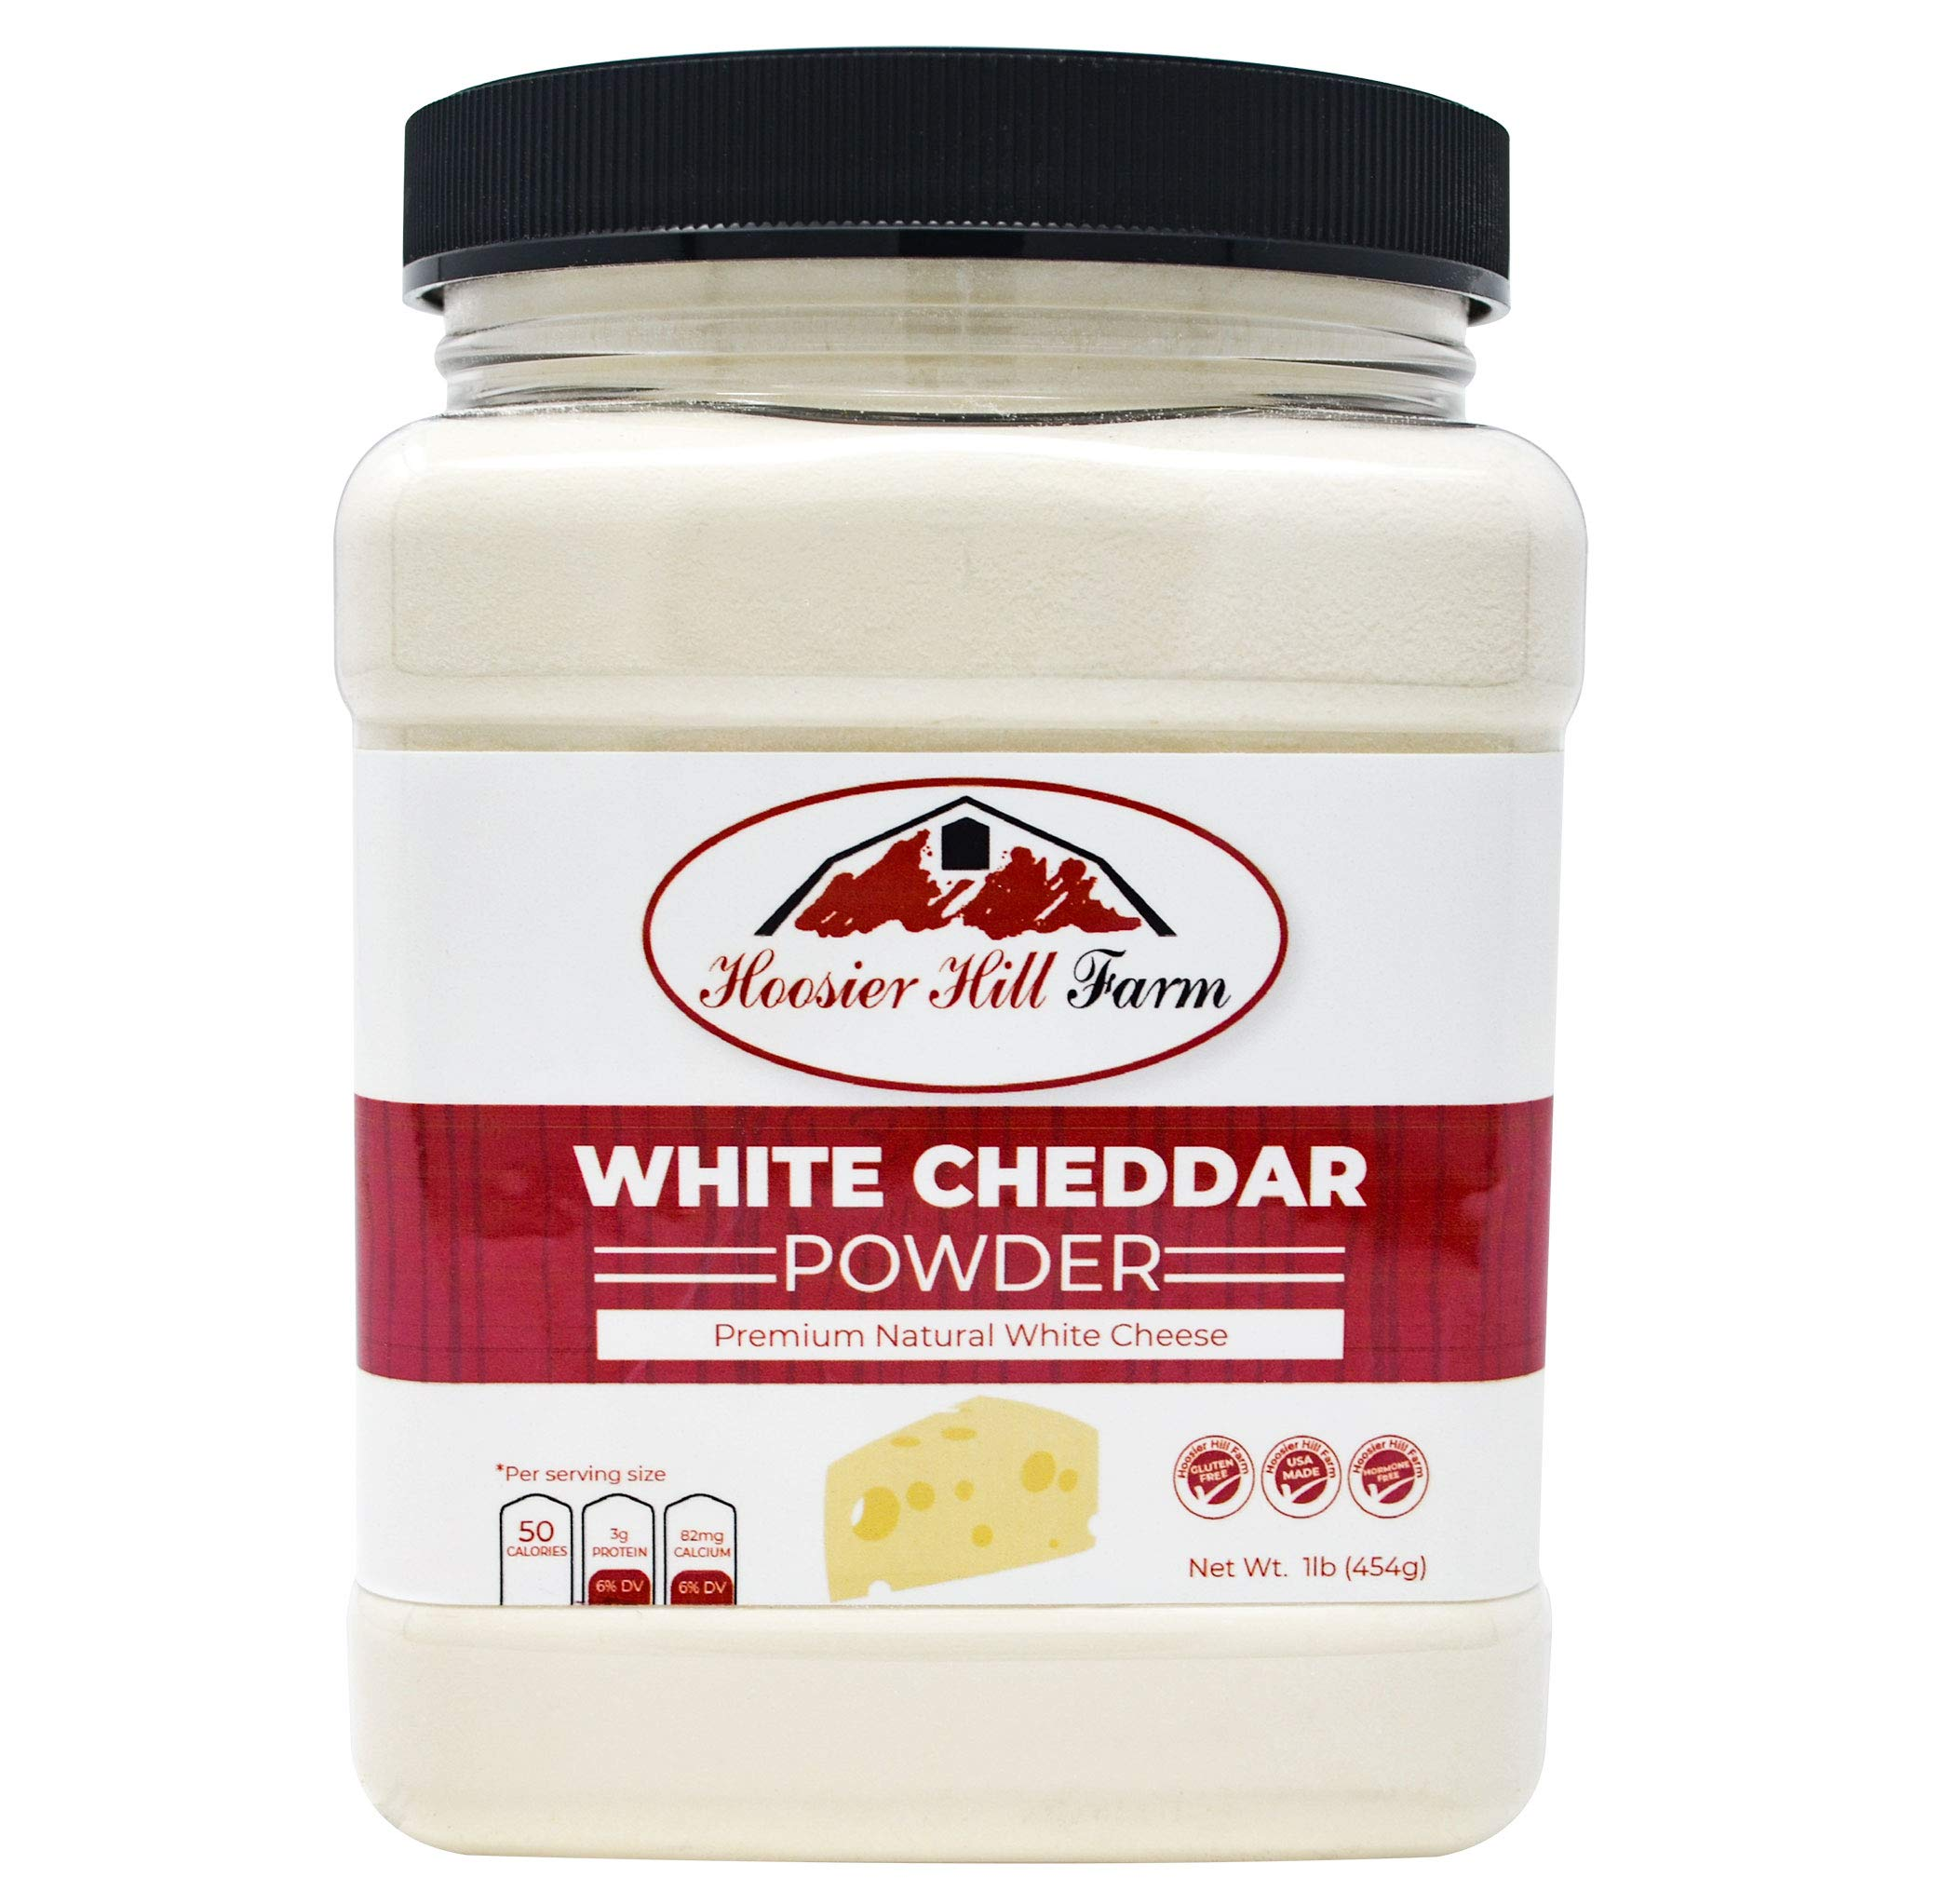 Hoosier Hill Farm Premium White Cheddar Cheese Powder, Natural (1 lb) rBGH and rBST.free.